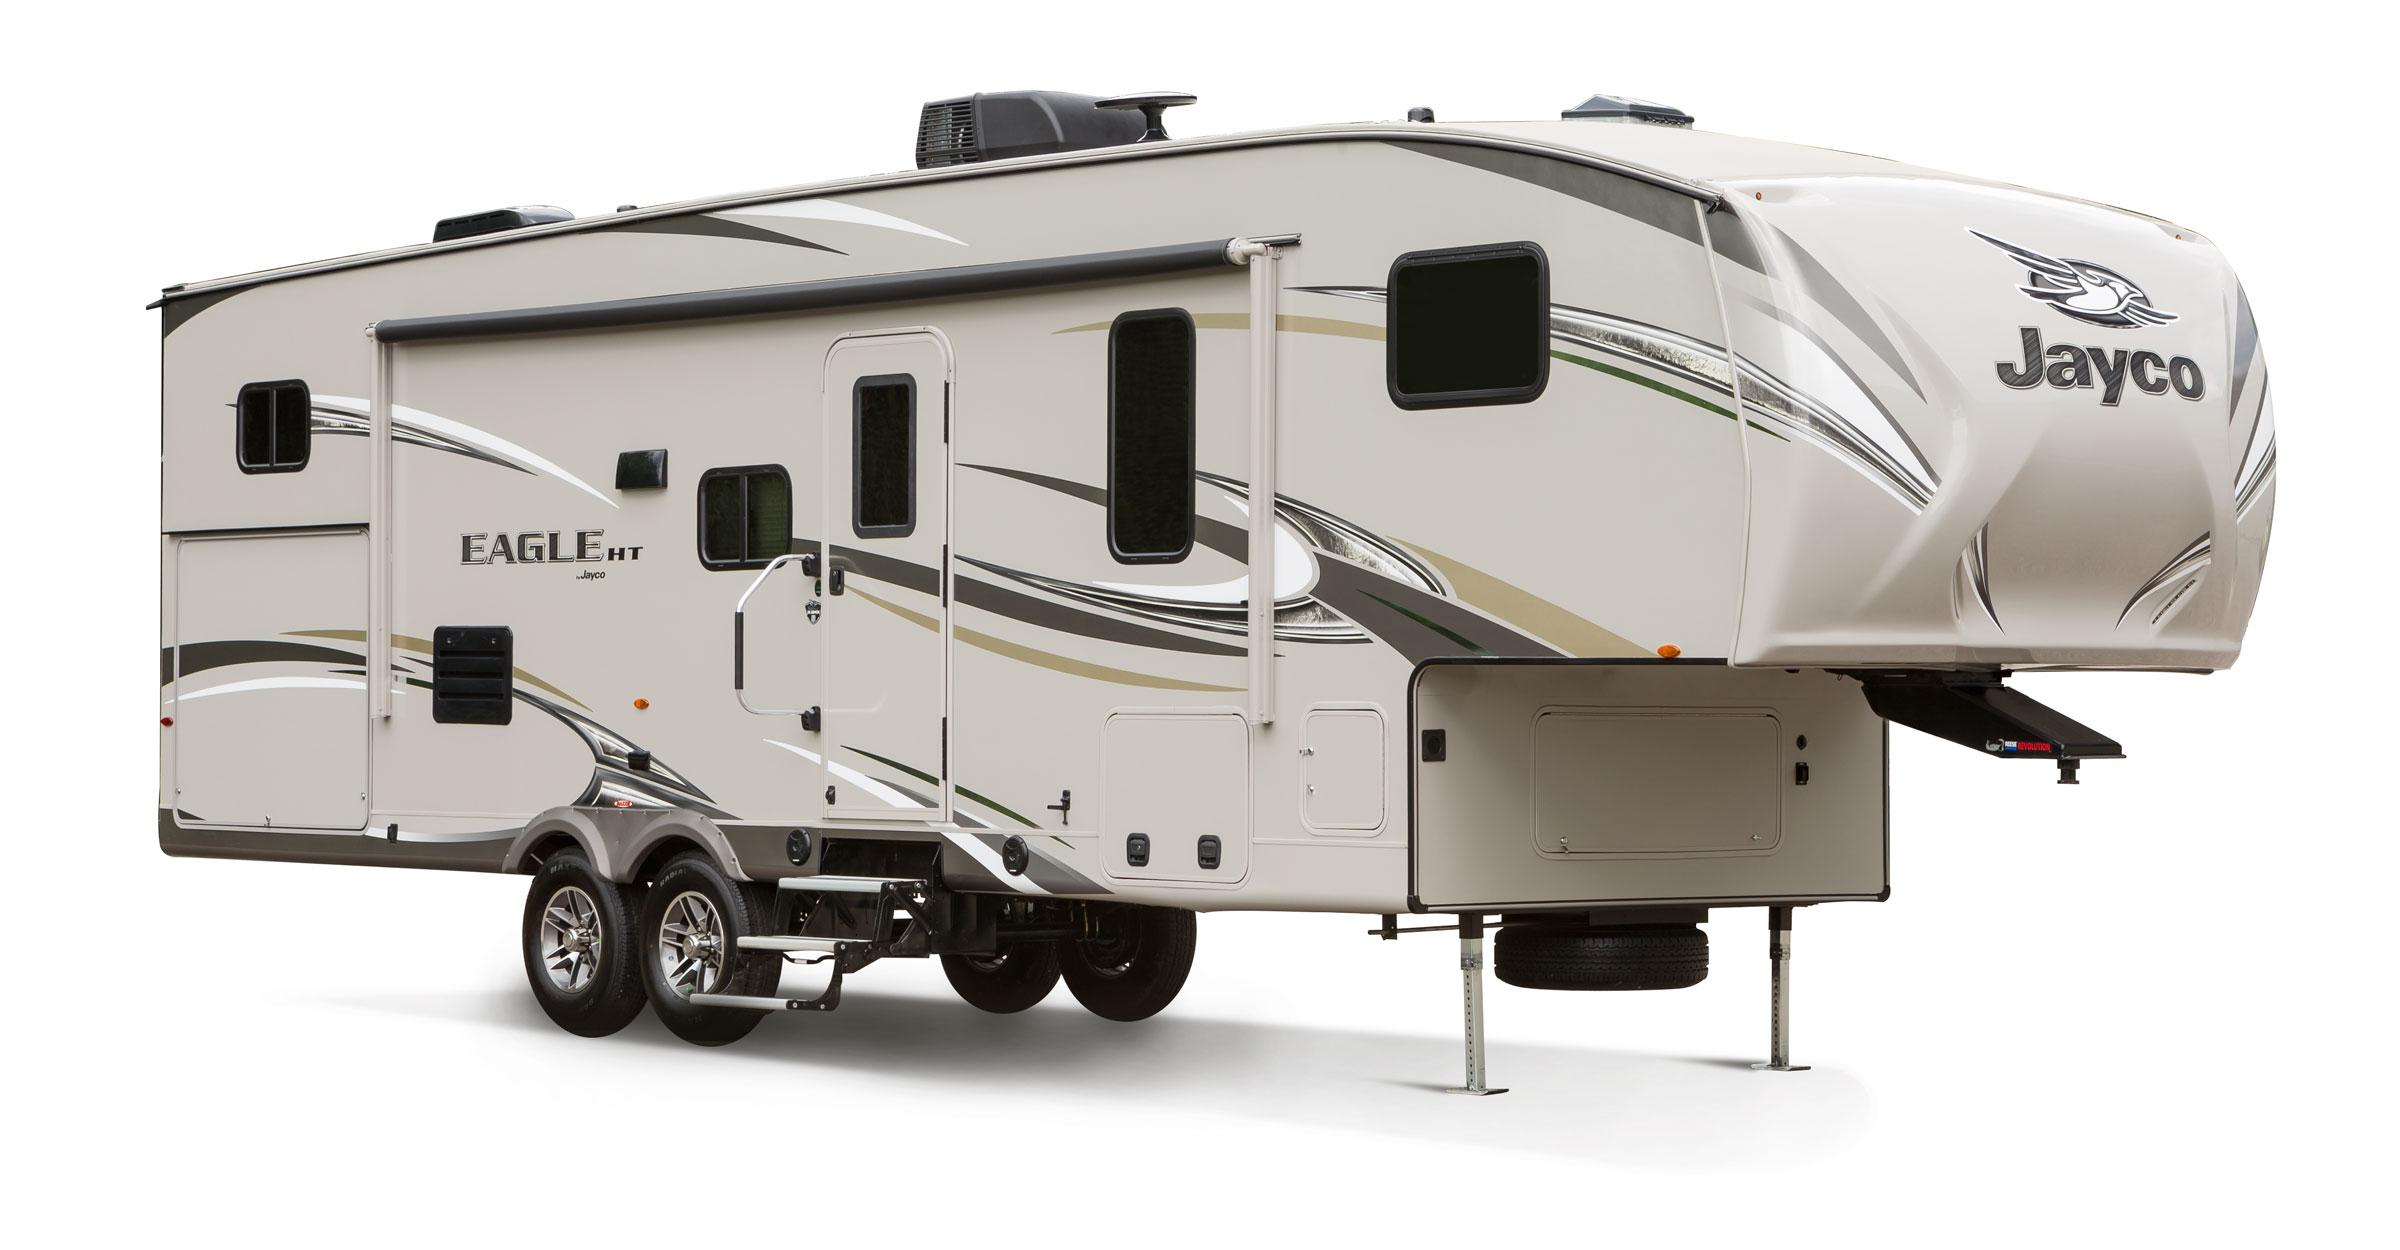 Jayco Eagle HTX for Winter Camping